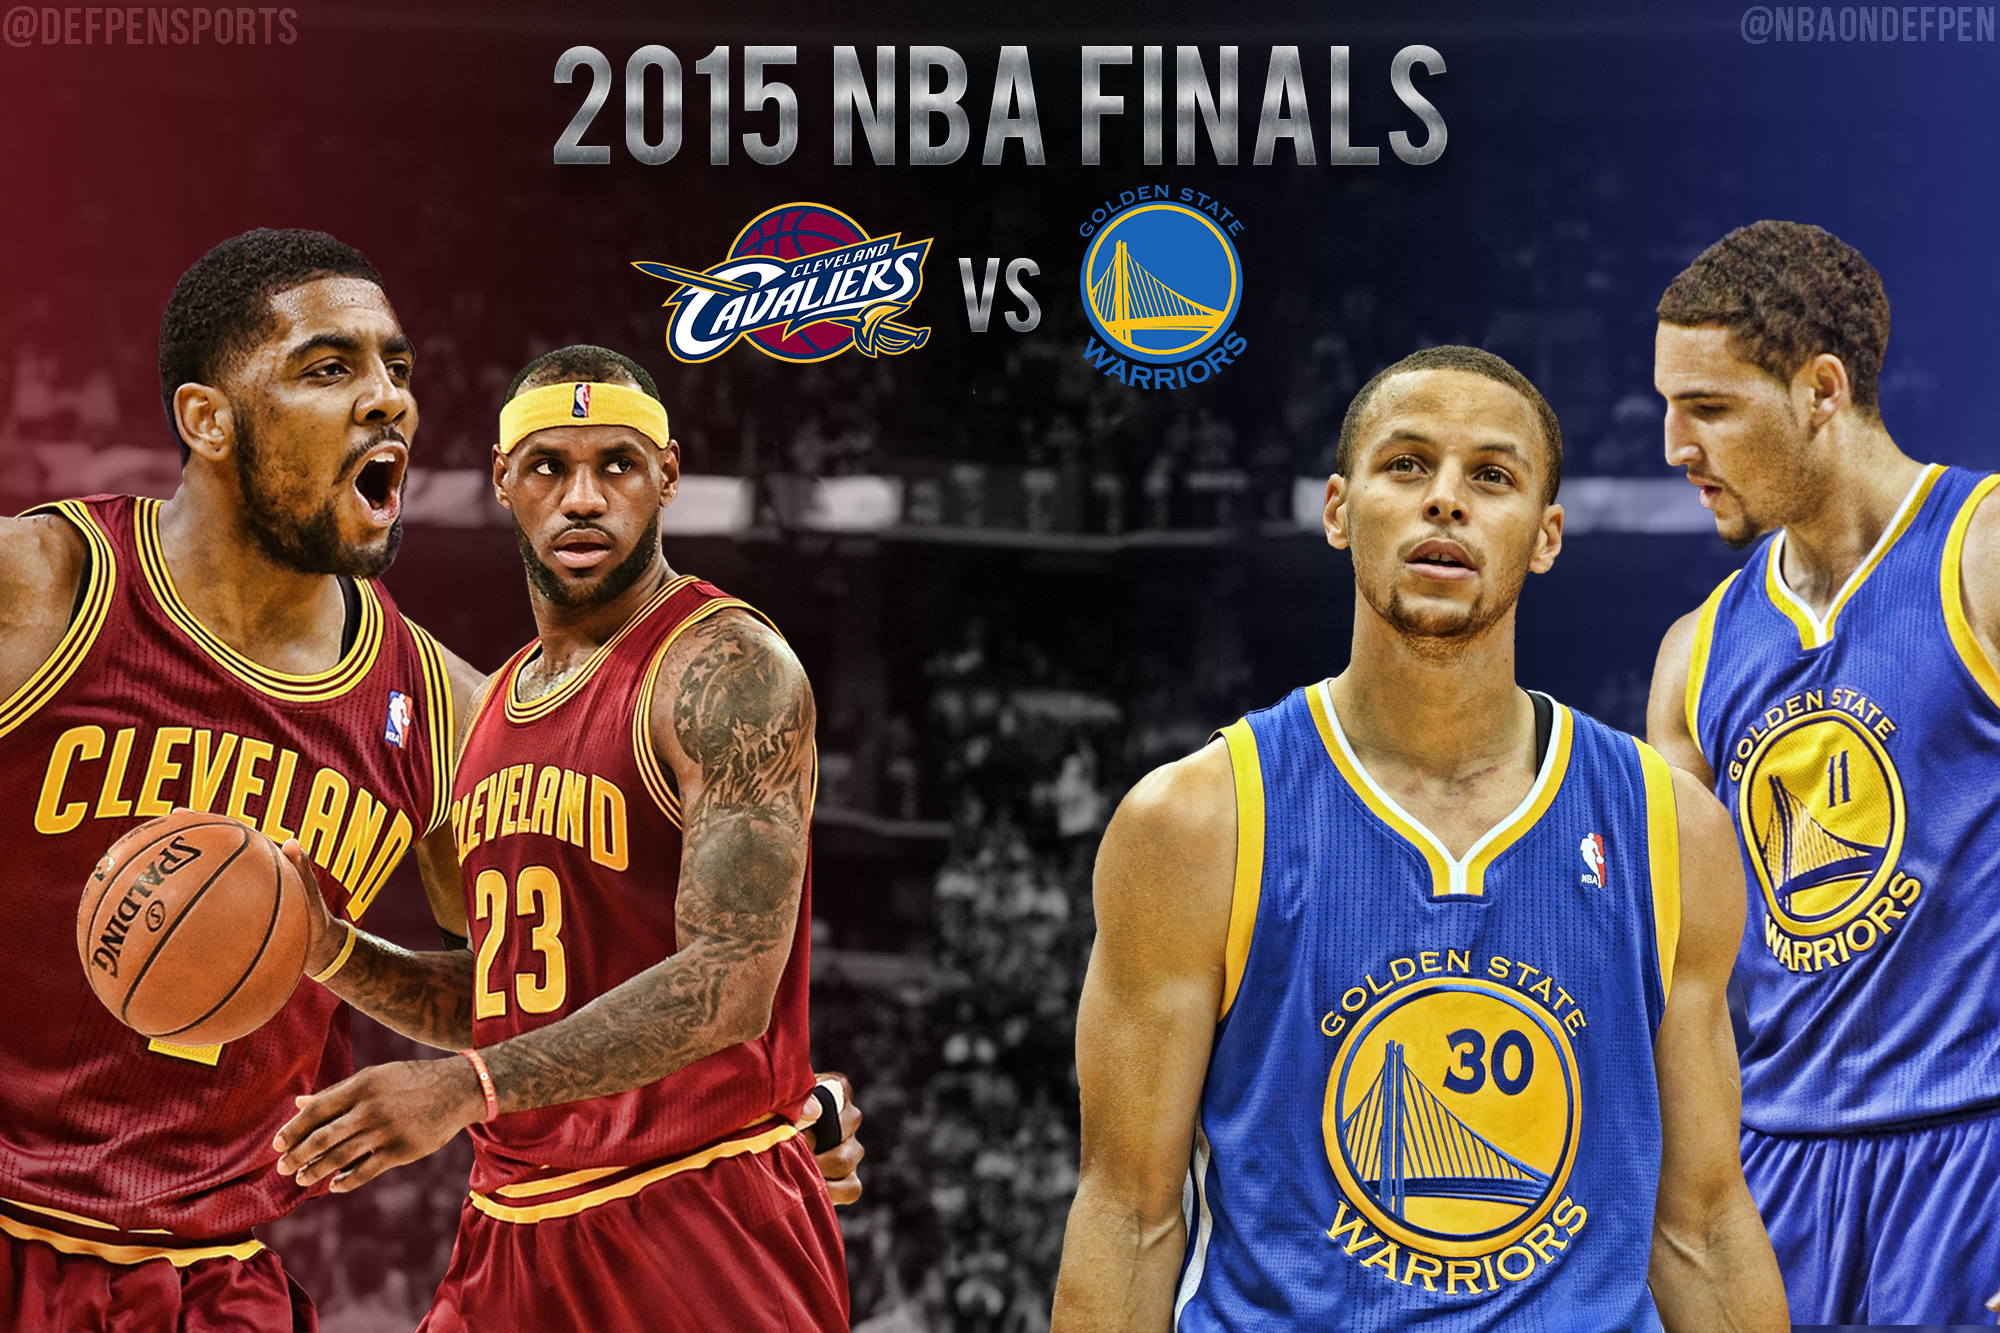 2015 NBA Finals Wallpaper - WallpaperSafari